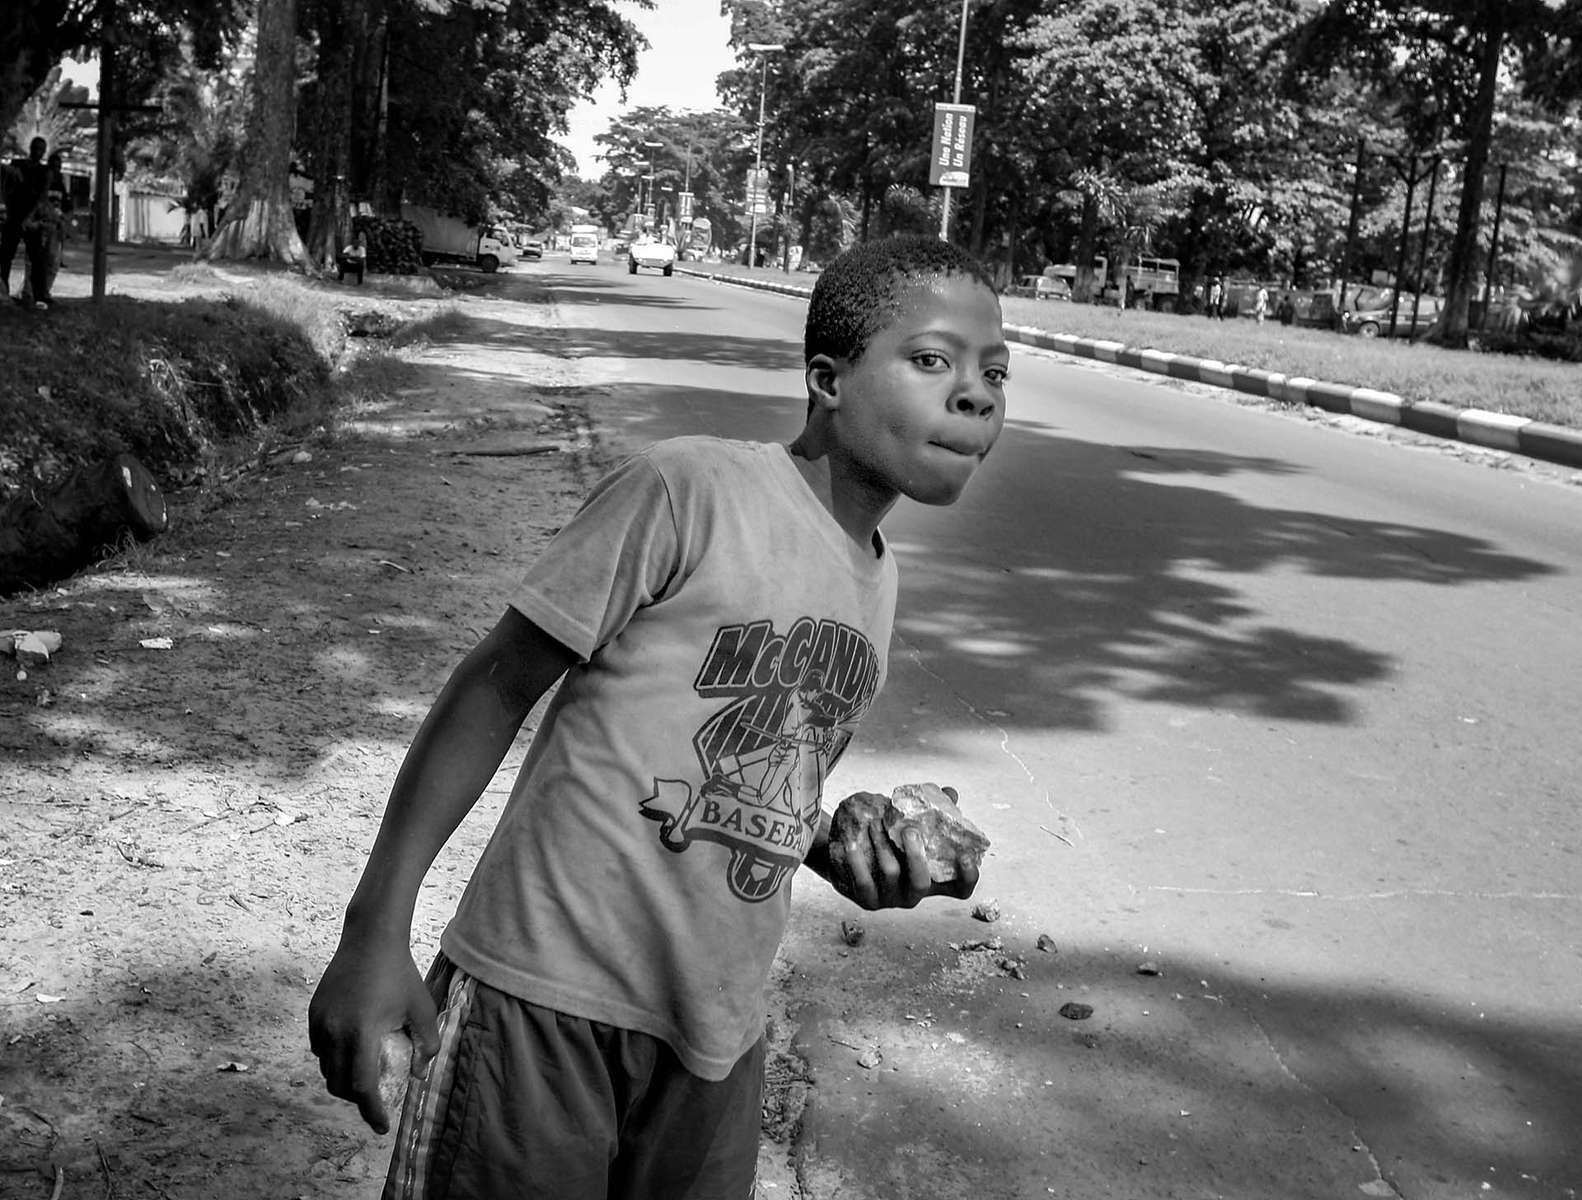 Young Congolese looks for an opportunity to throw his rocks at police on the main street of Kinshasa Thursday November 16, 2006. The day after Joseph Kabila was declared as the president, the air is tense in the capital.